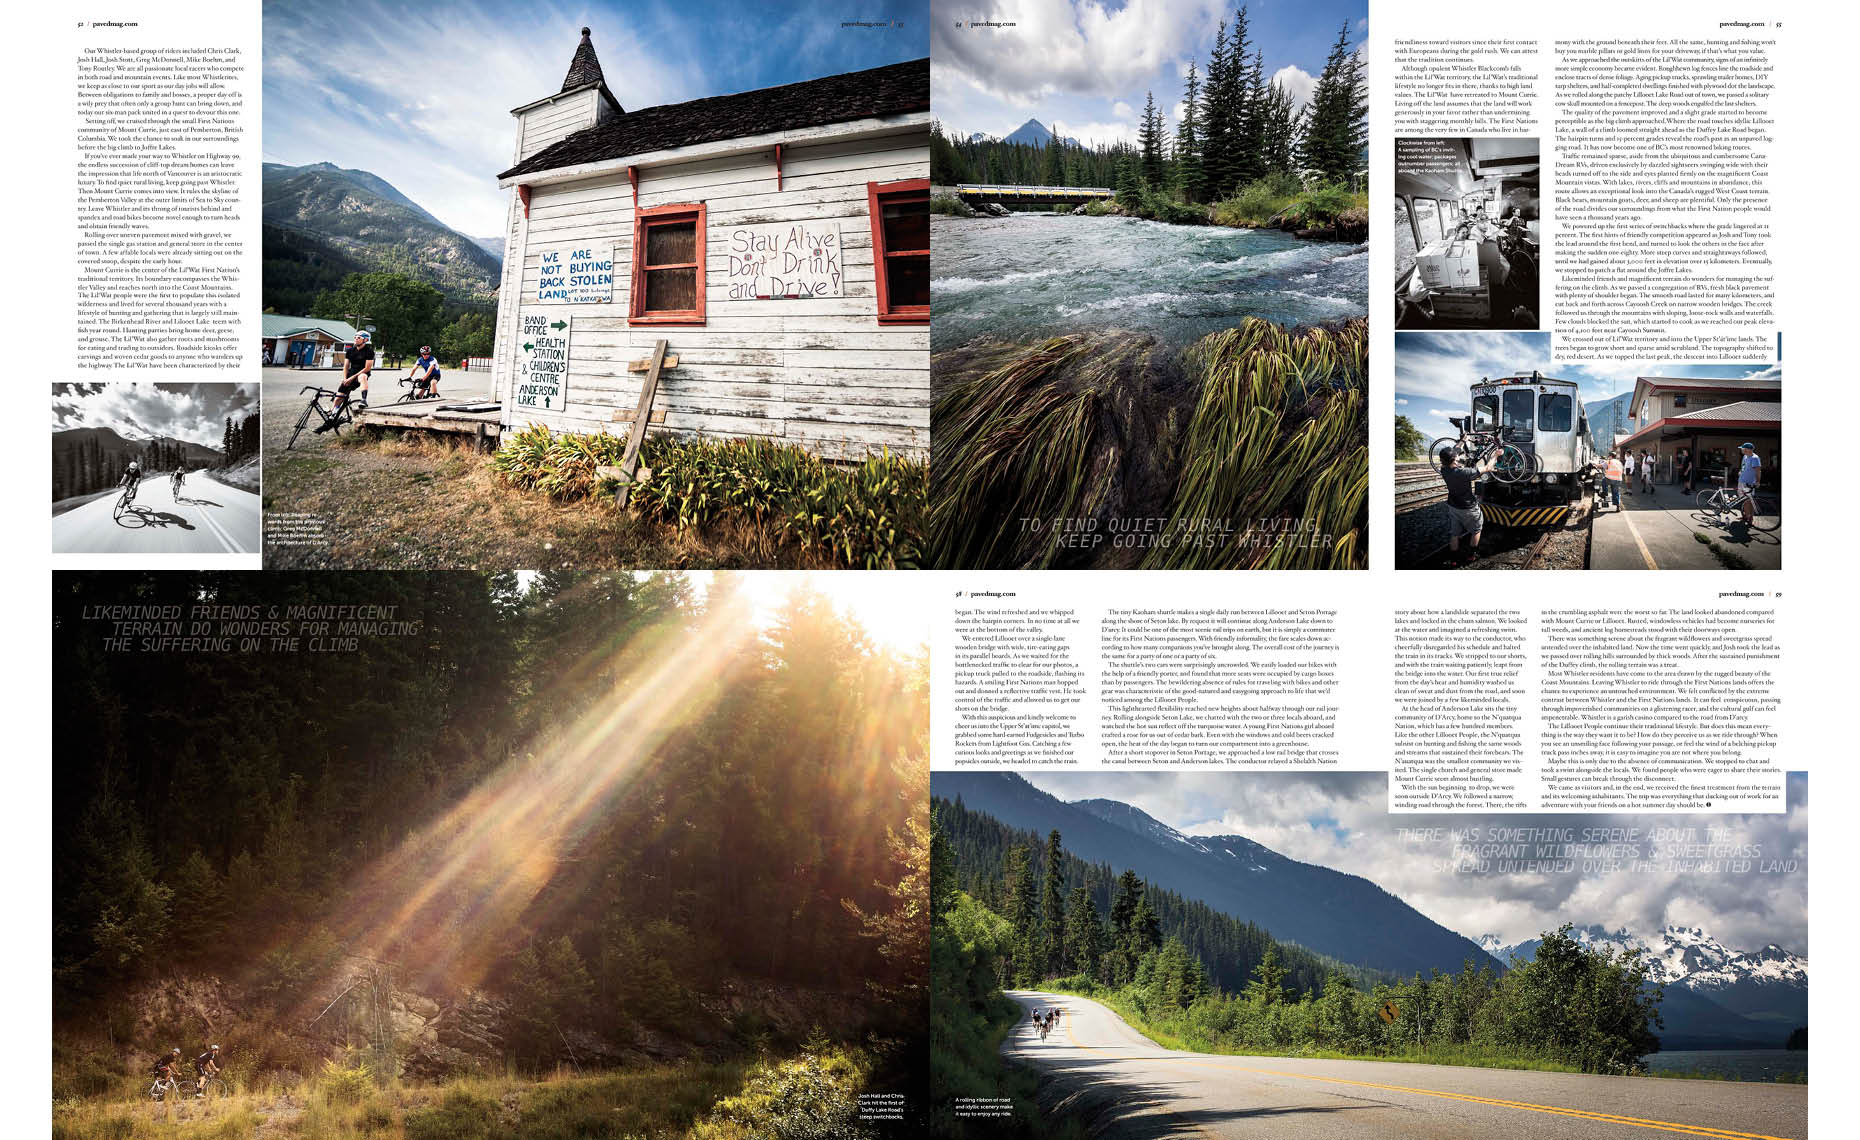 Whistler road bike photographer feature article